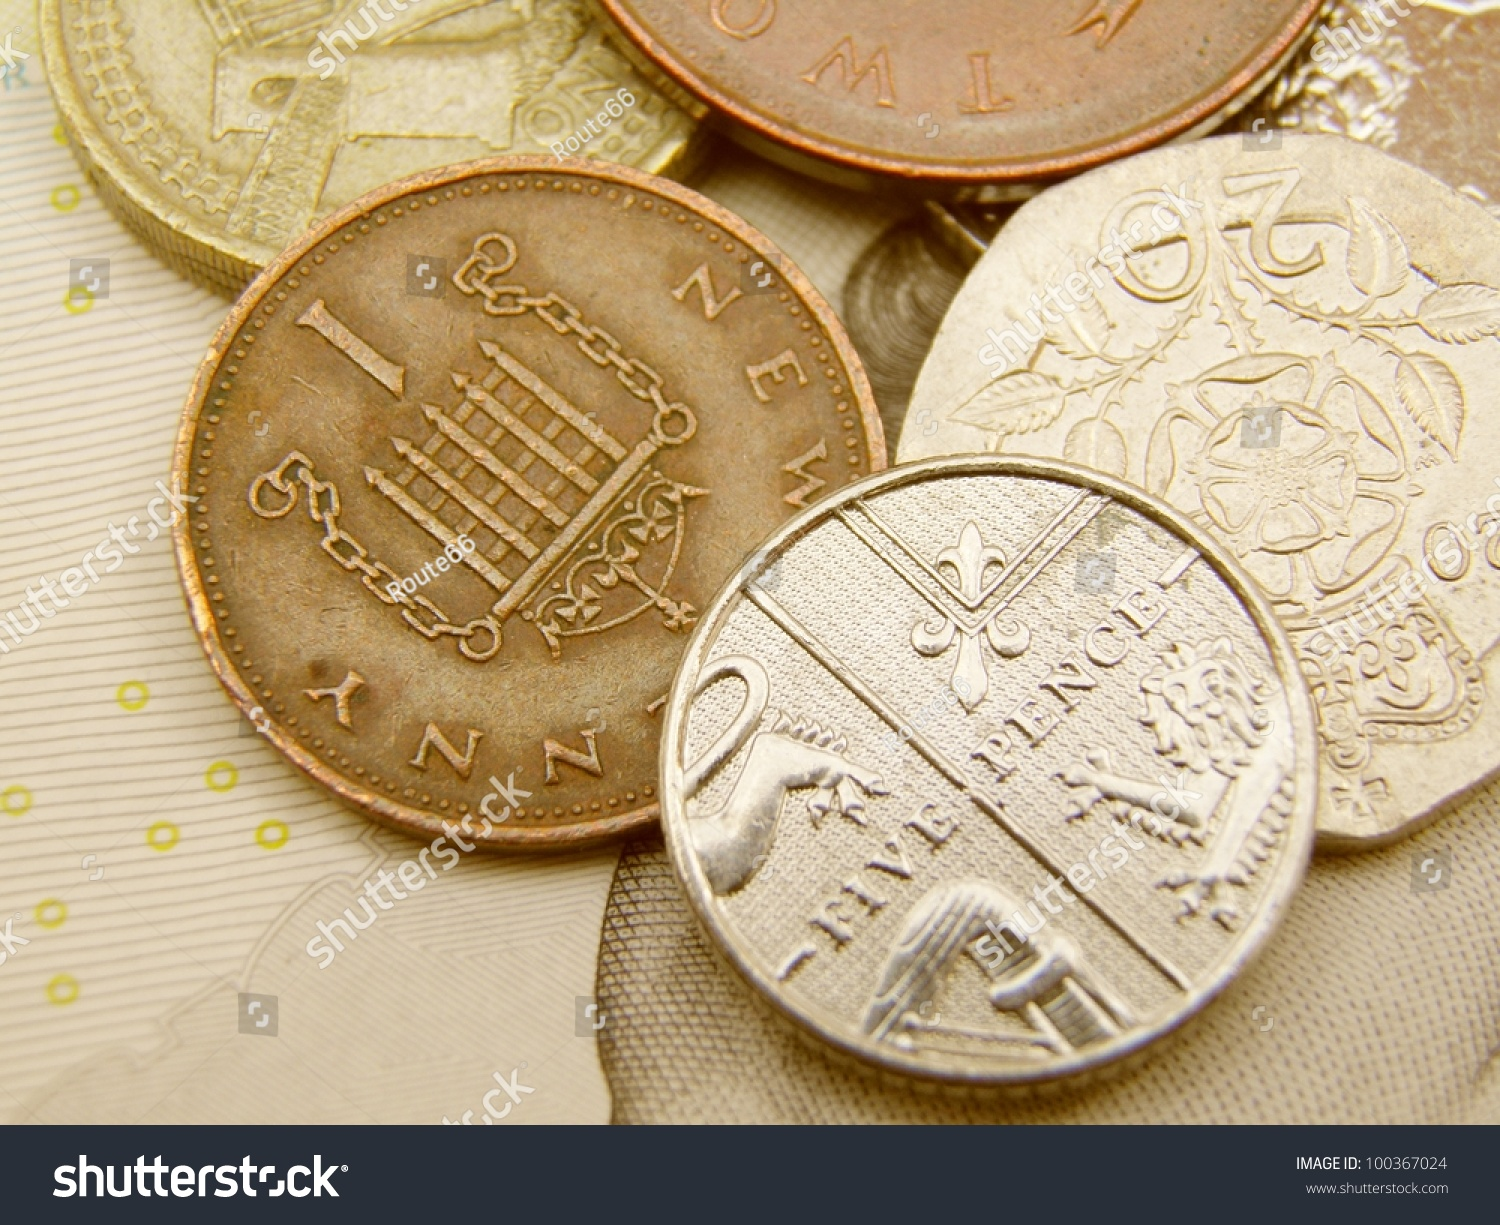 Is forex trading legal in uk